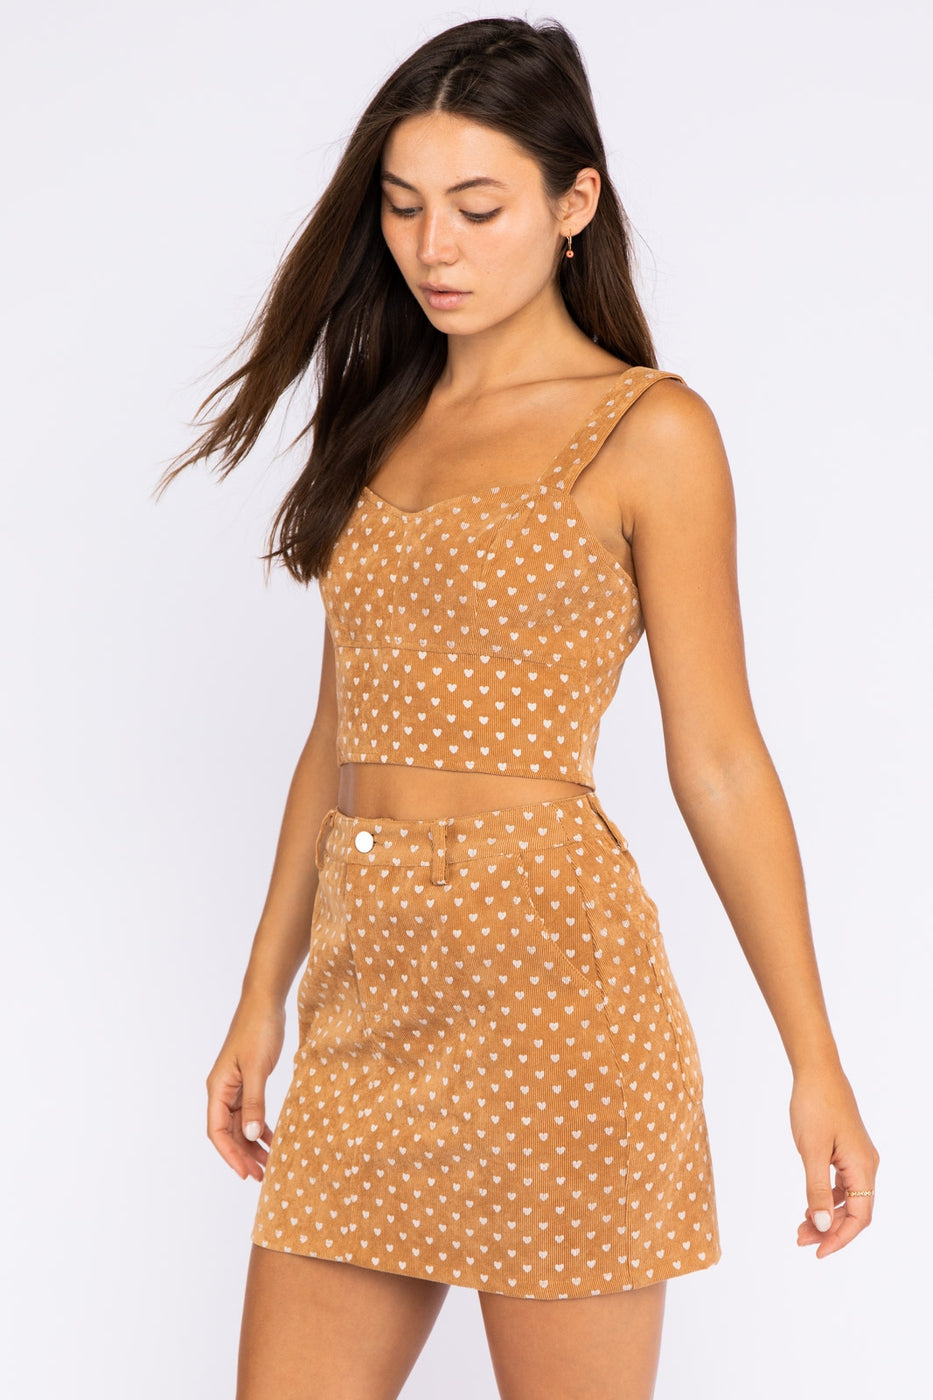 Polka Dot U Line Neck Top In Tan Siin Bees